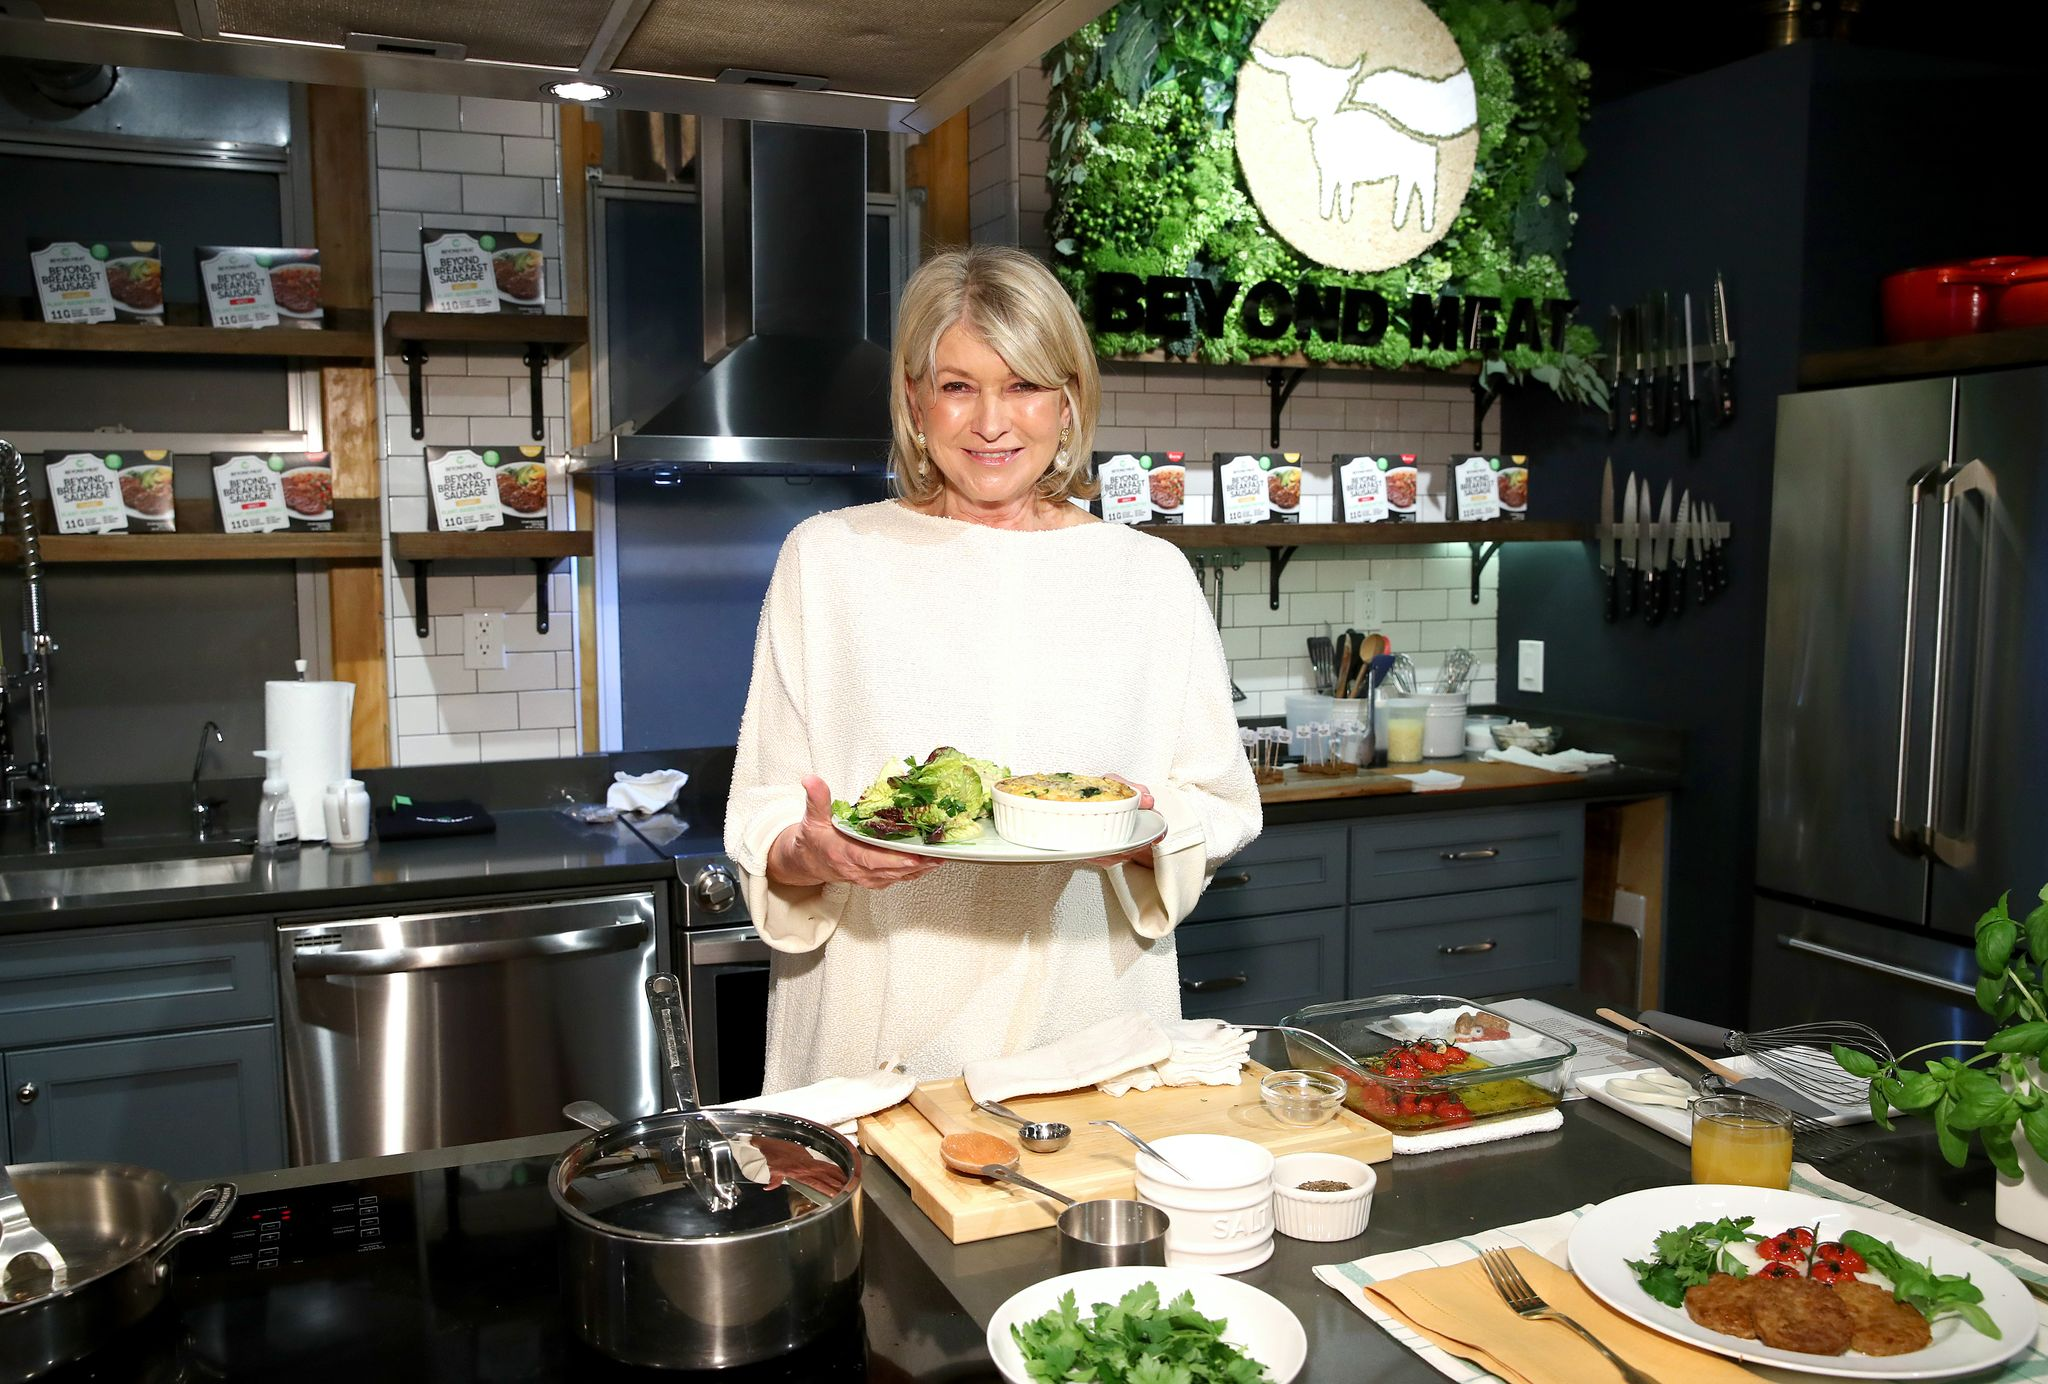 Martha Stewart prepares the Classic Beyond Breakfast Sausage with spinach and sweet onion frittata on March 10, 2020 in New York City | Source: Getty Images